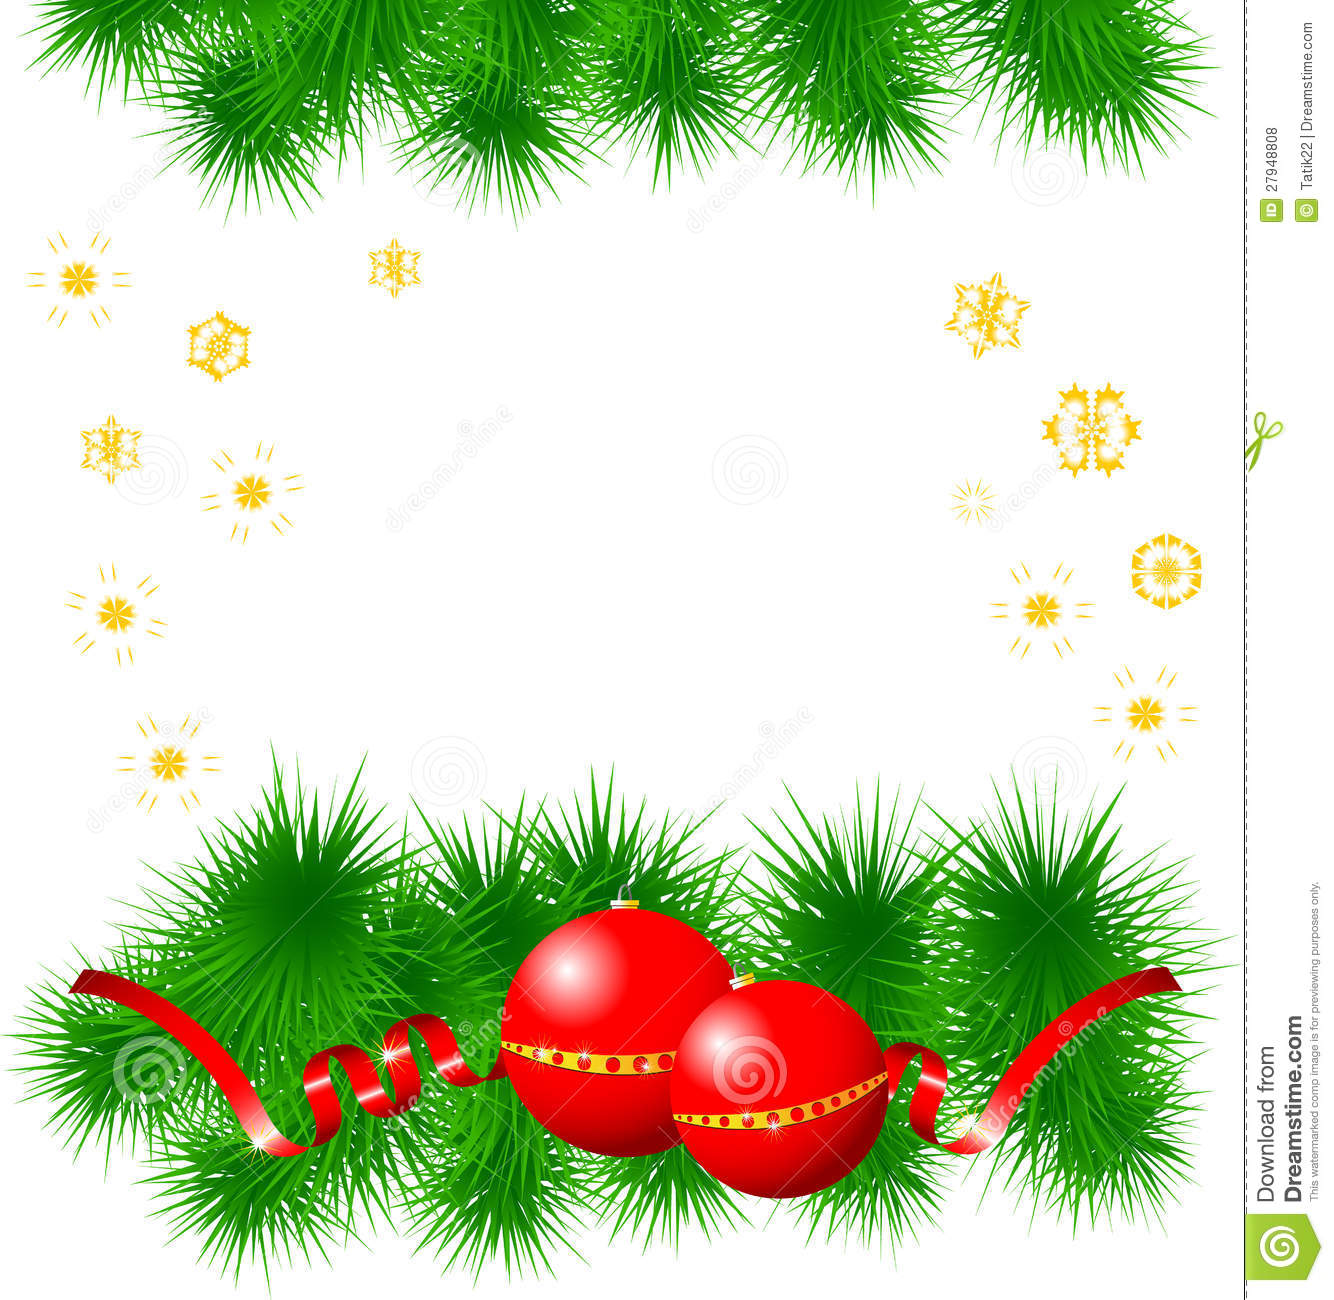 Christmas background stock vector. Illustration of traditional ...